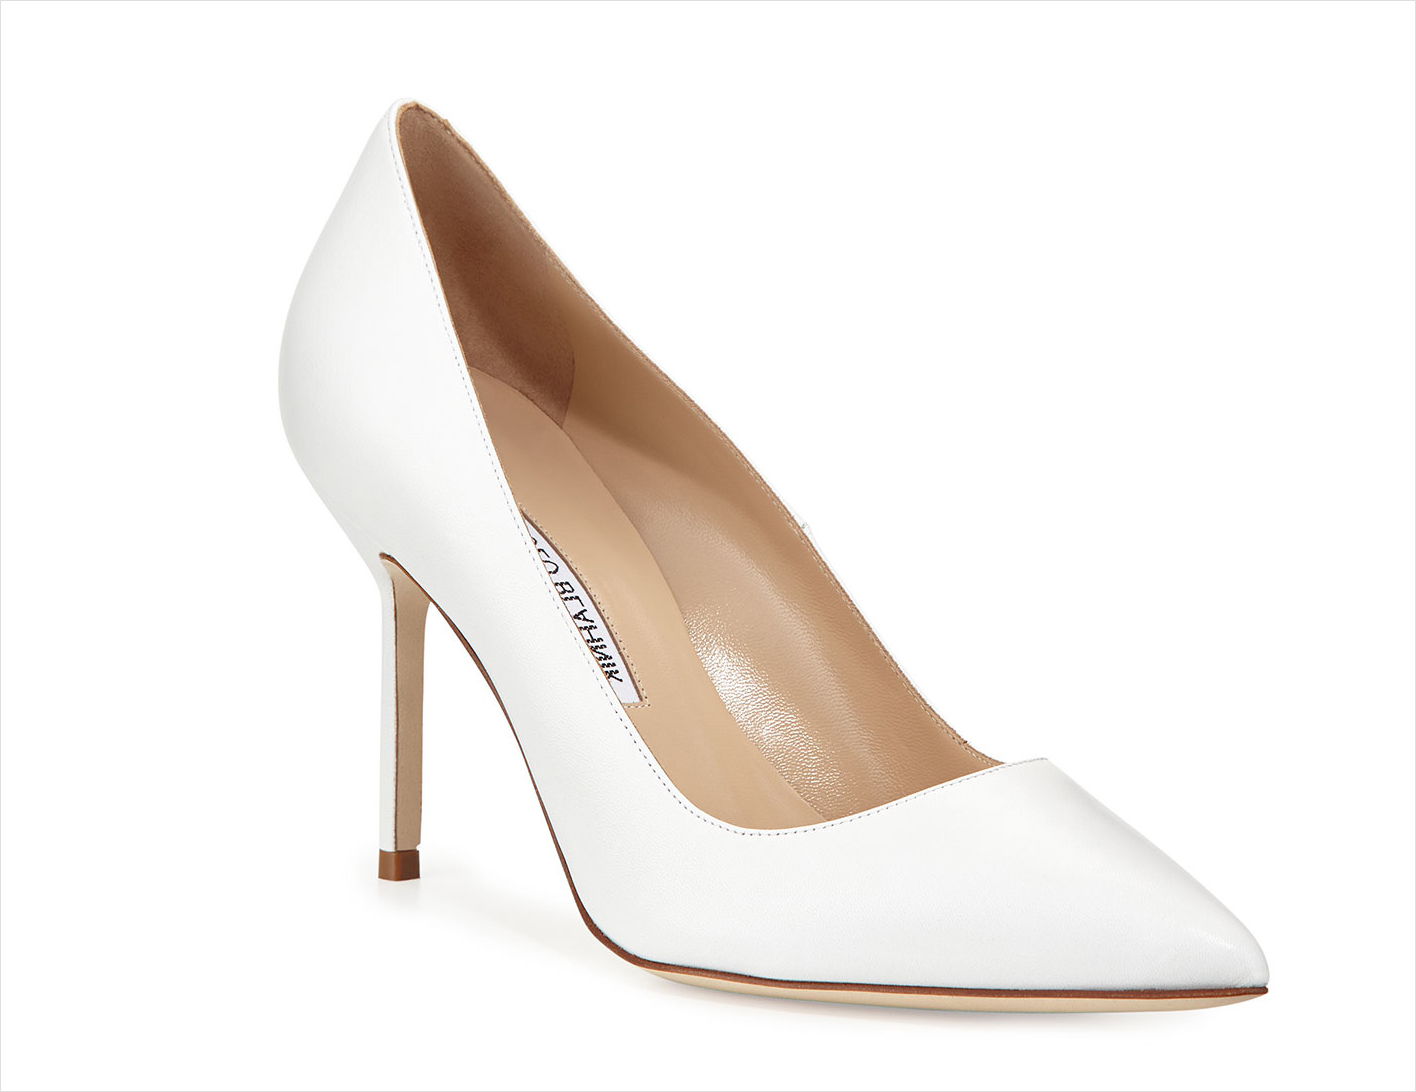 1dbefe9dc52 Nordstrom BB pointed toe pump Manolo Blahnik white wedding heels shoes ""